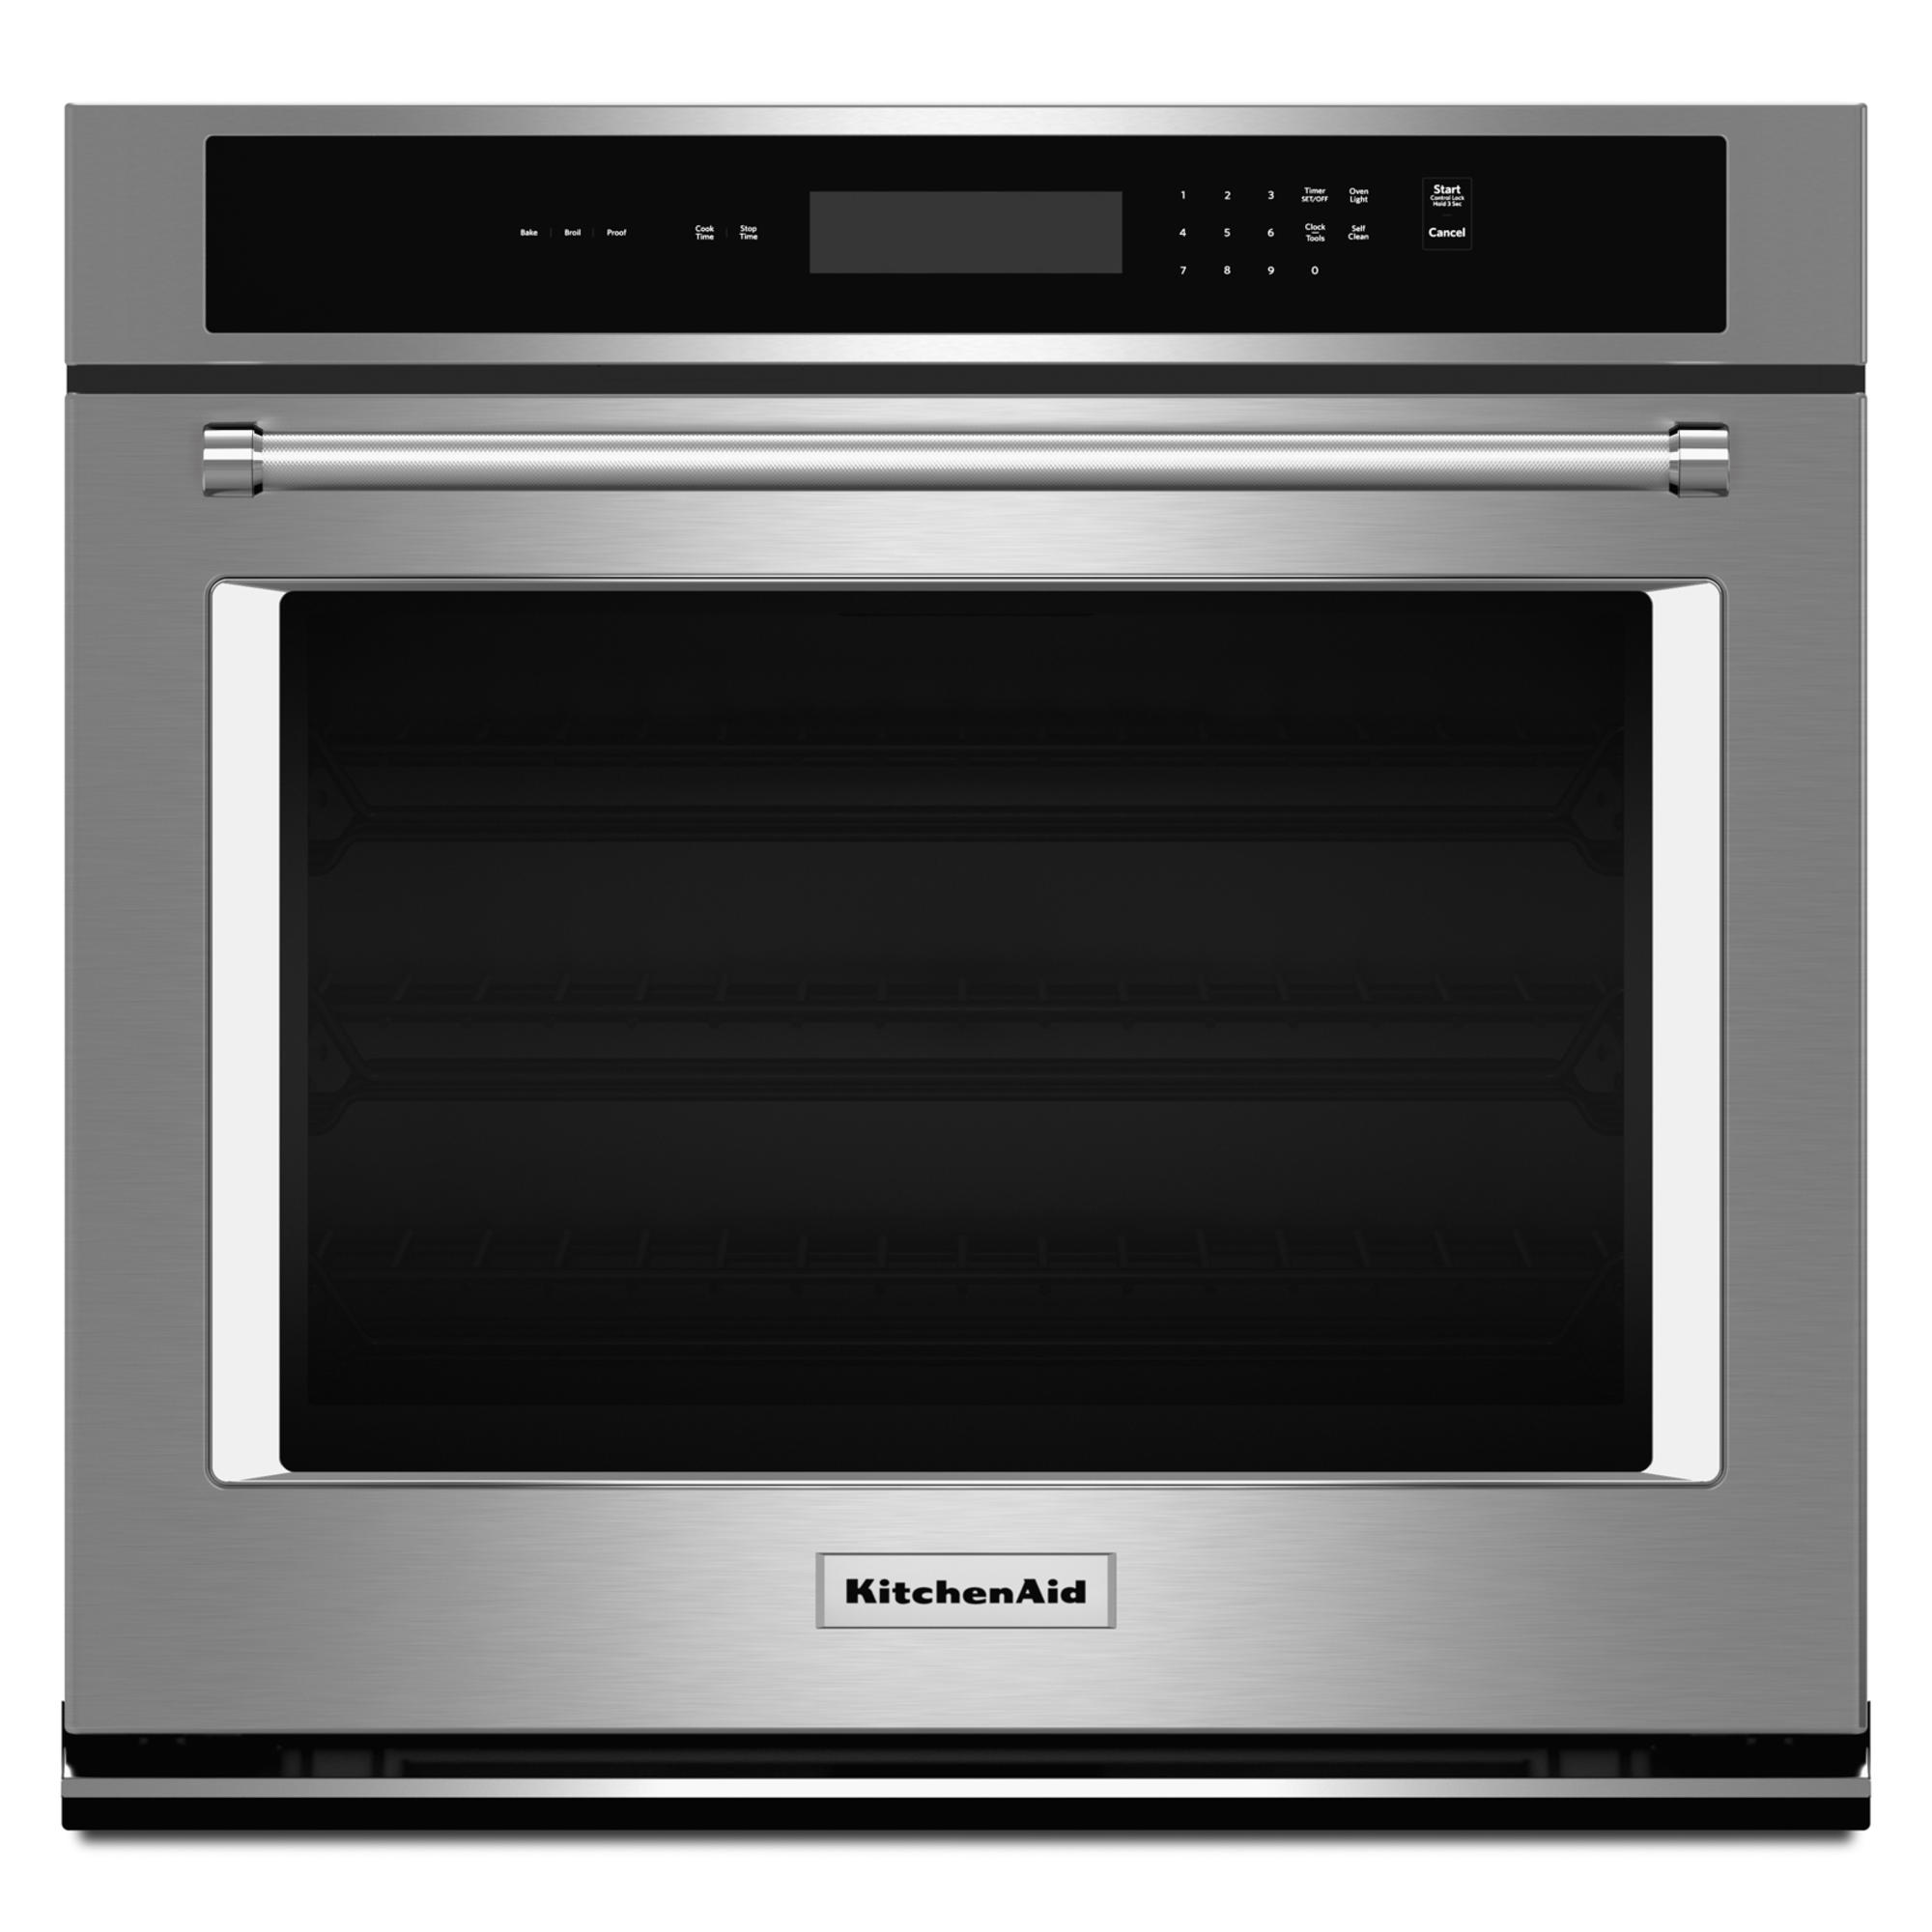 KitchenAid KOST107ESS 4.3 cu. ft. Single Wall Oven with Even-Heat™ Thermal Bake/Broil - Stainless Steel